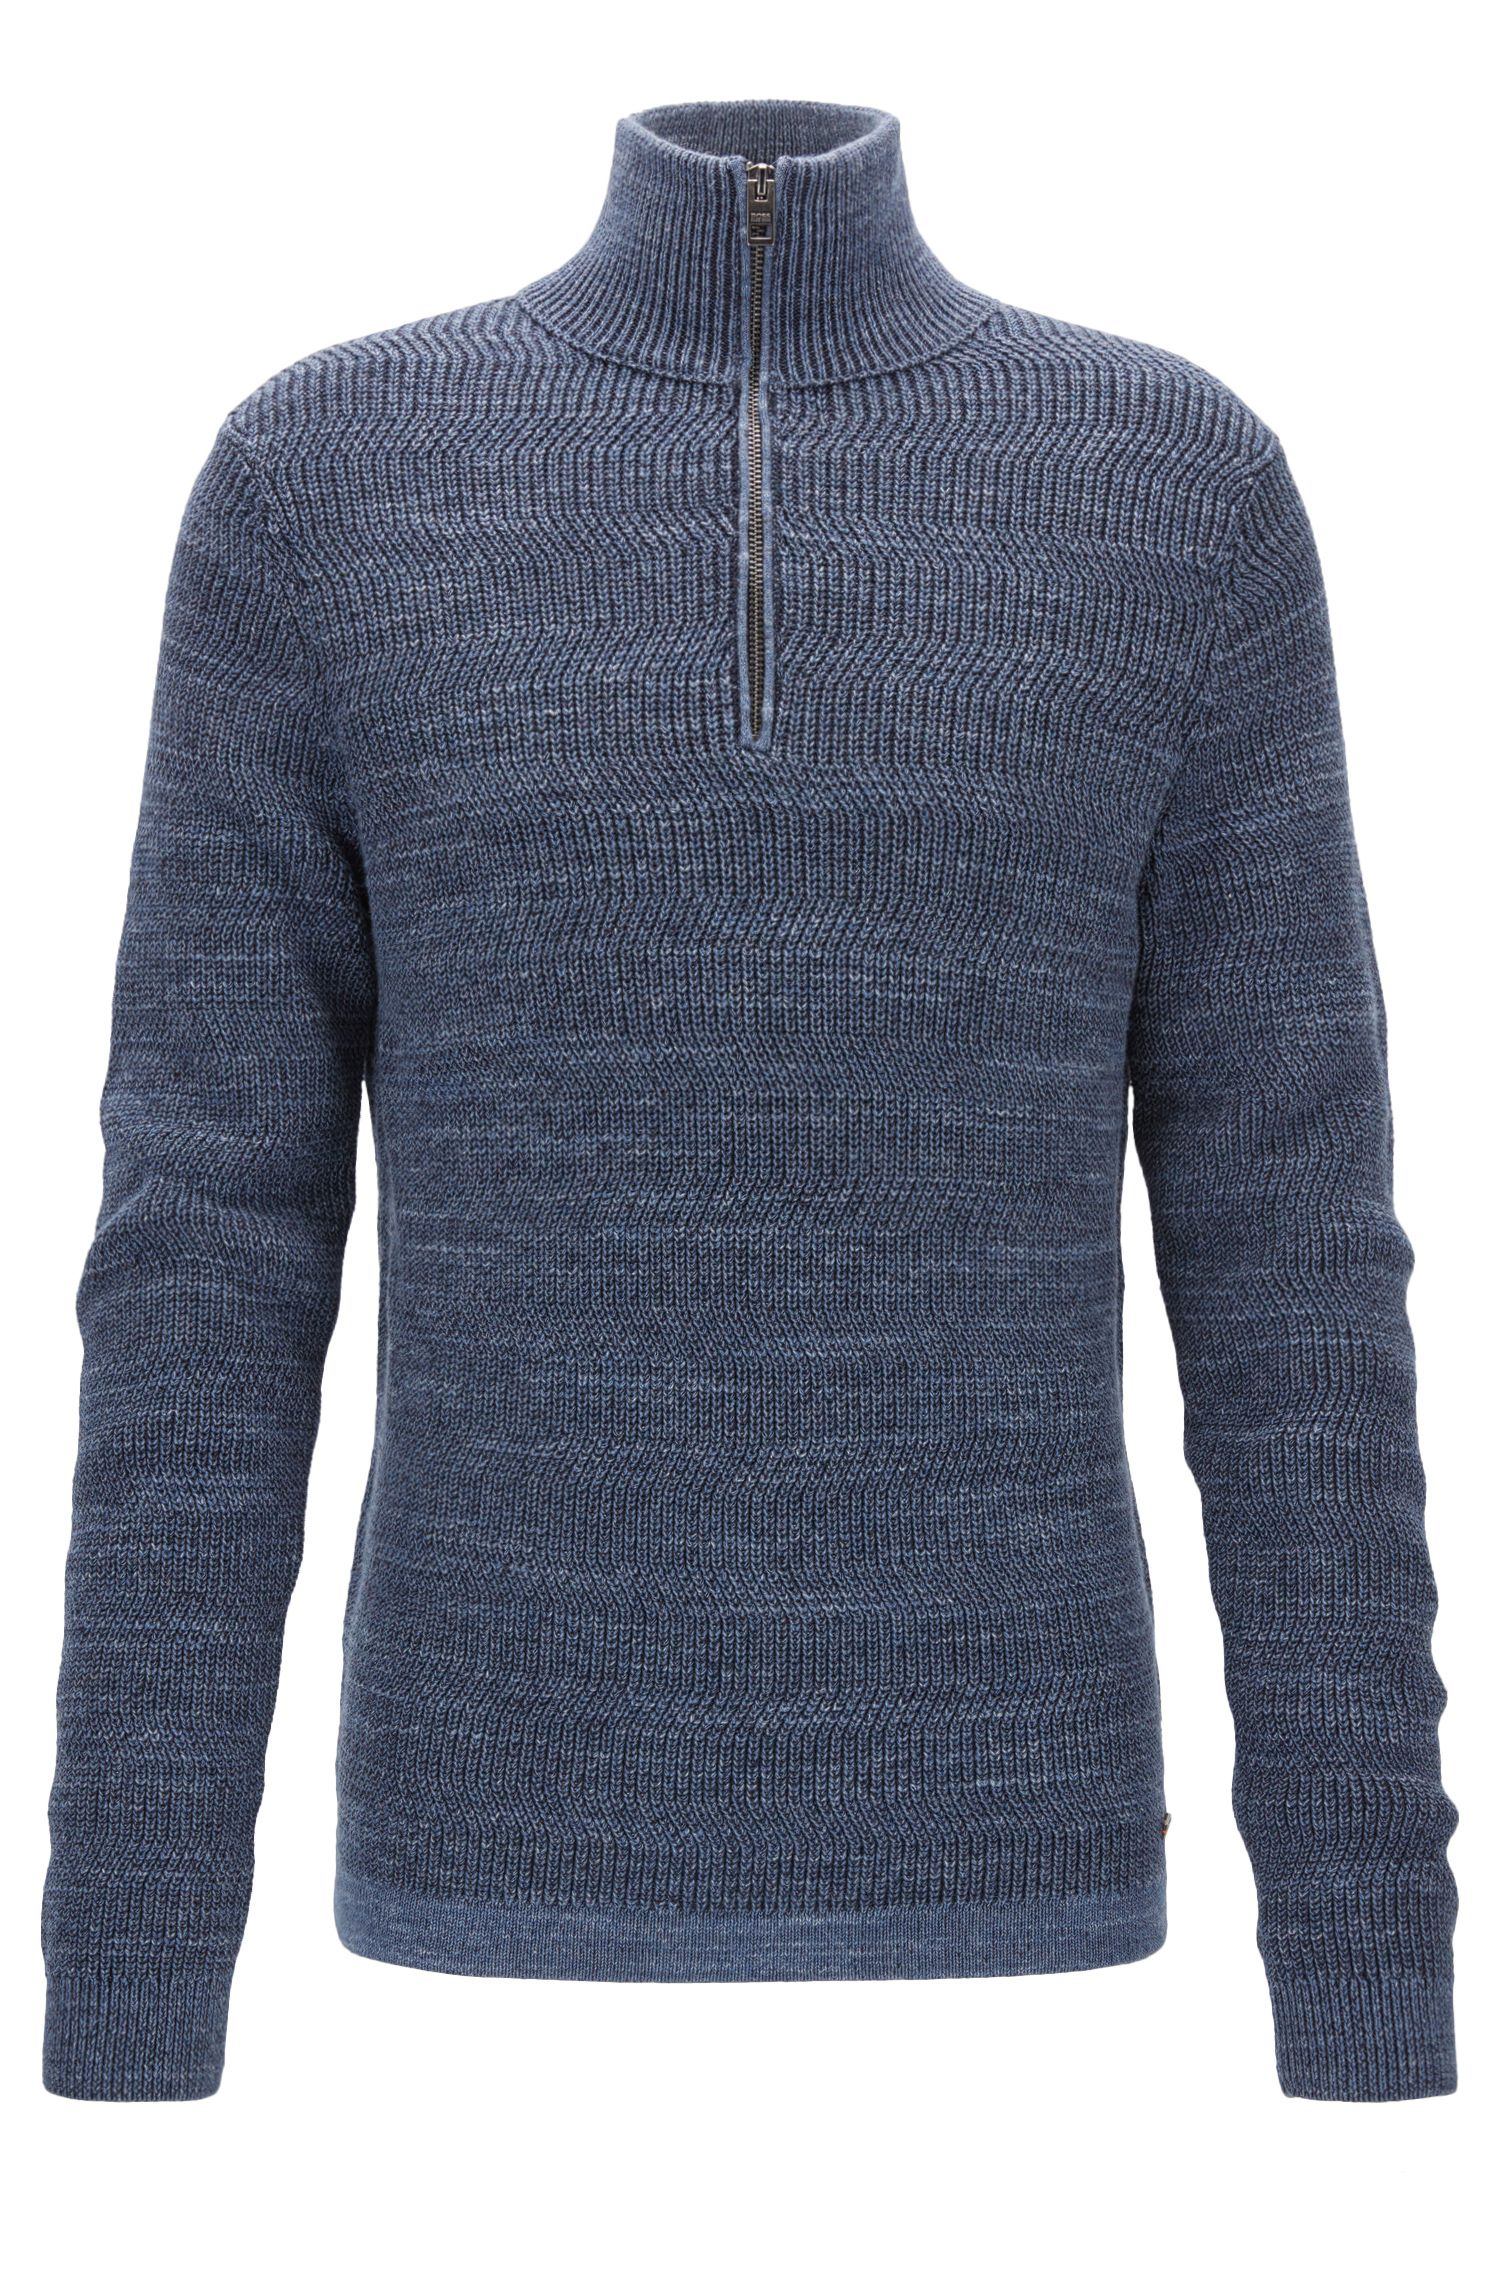 Zip-neck sweater in modern ribbed-knit cotton